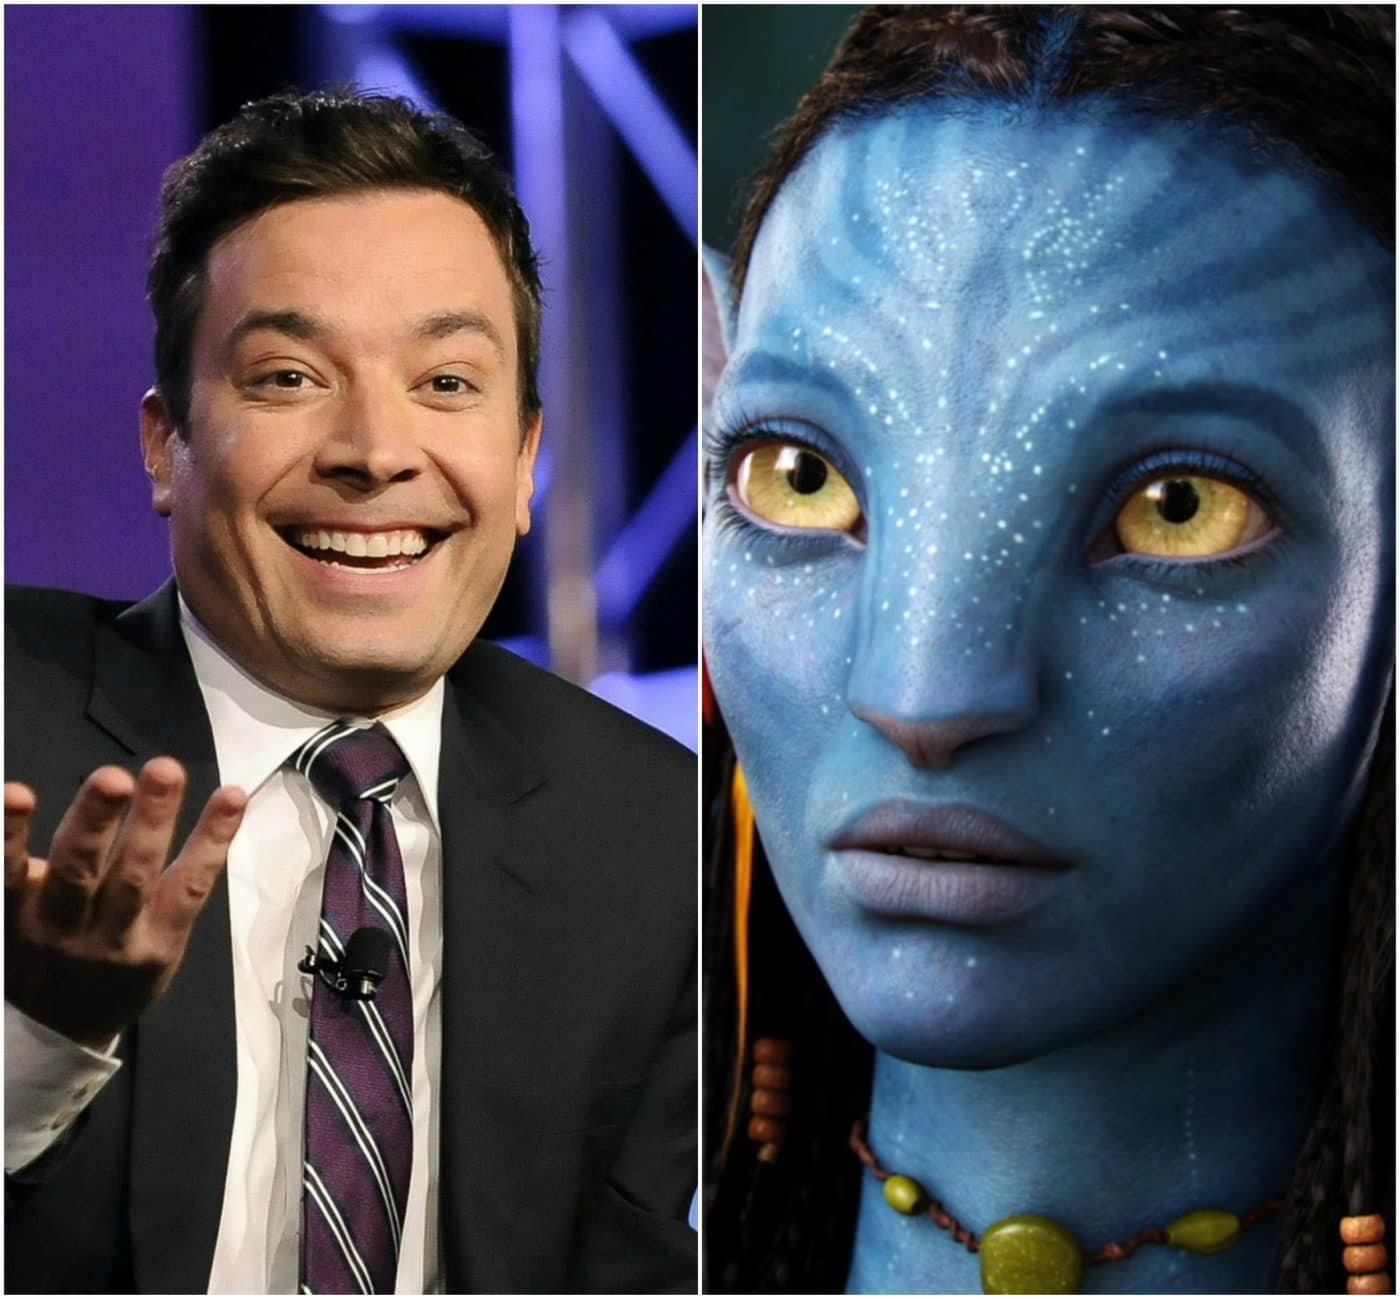 The surprising way that Jimmy Fallon connects with Avatar Land